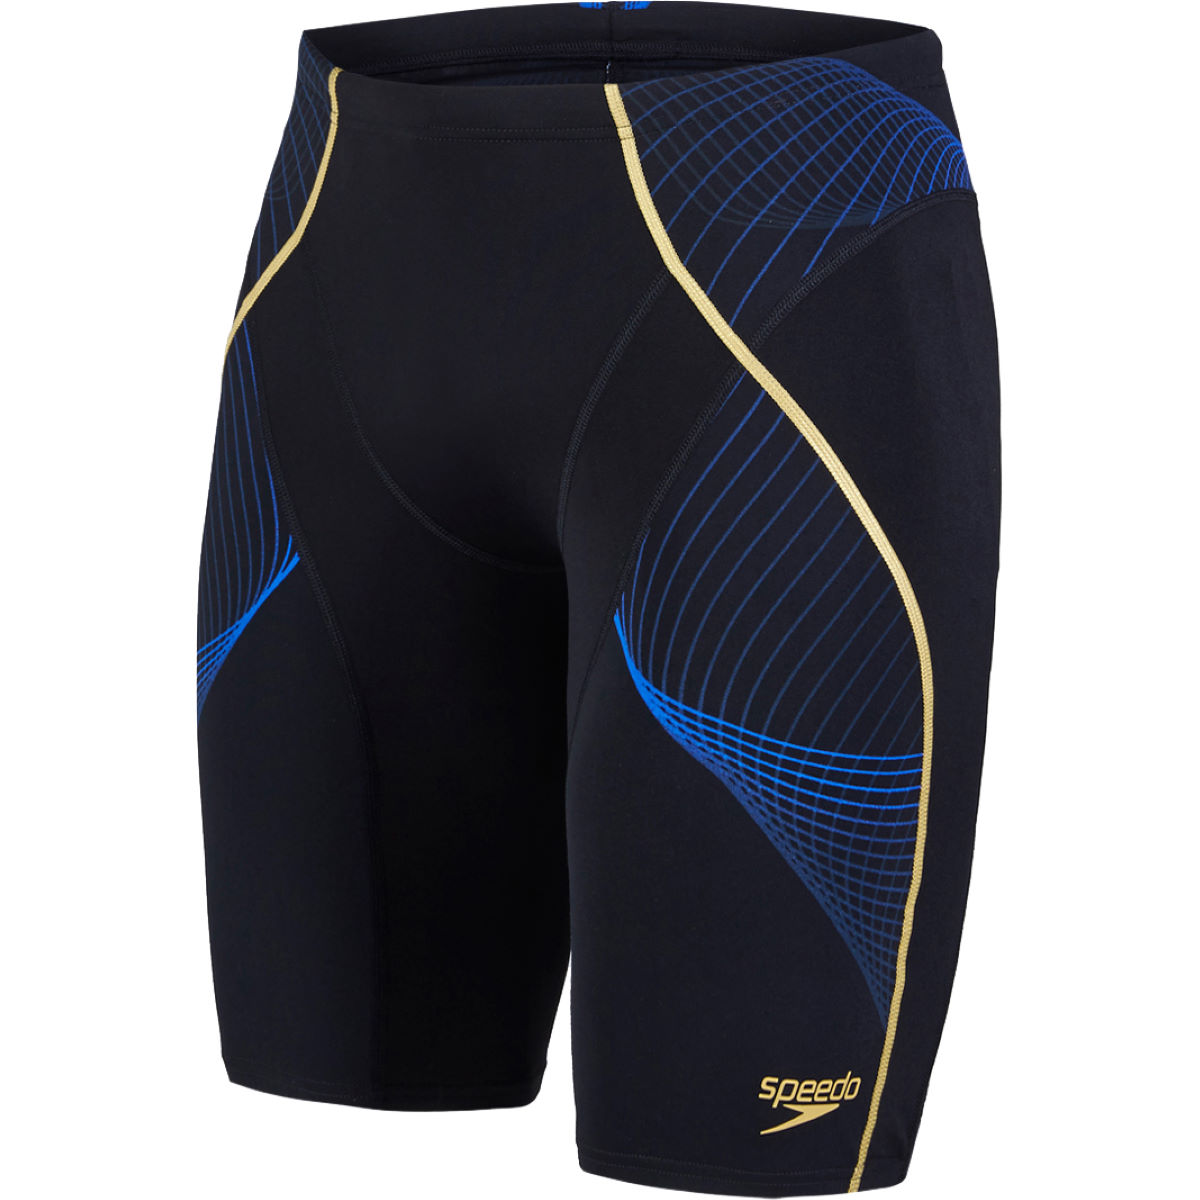 Jammer Speedo Speedo Fit Pinnacle (AH16) - 40 Noir/Bleu Maillots de bain Adulte